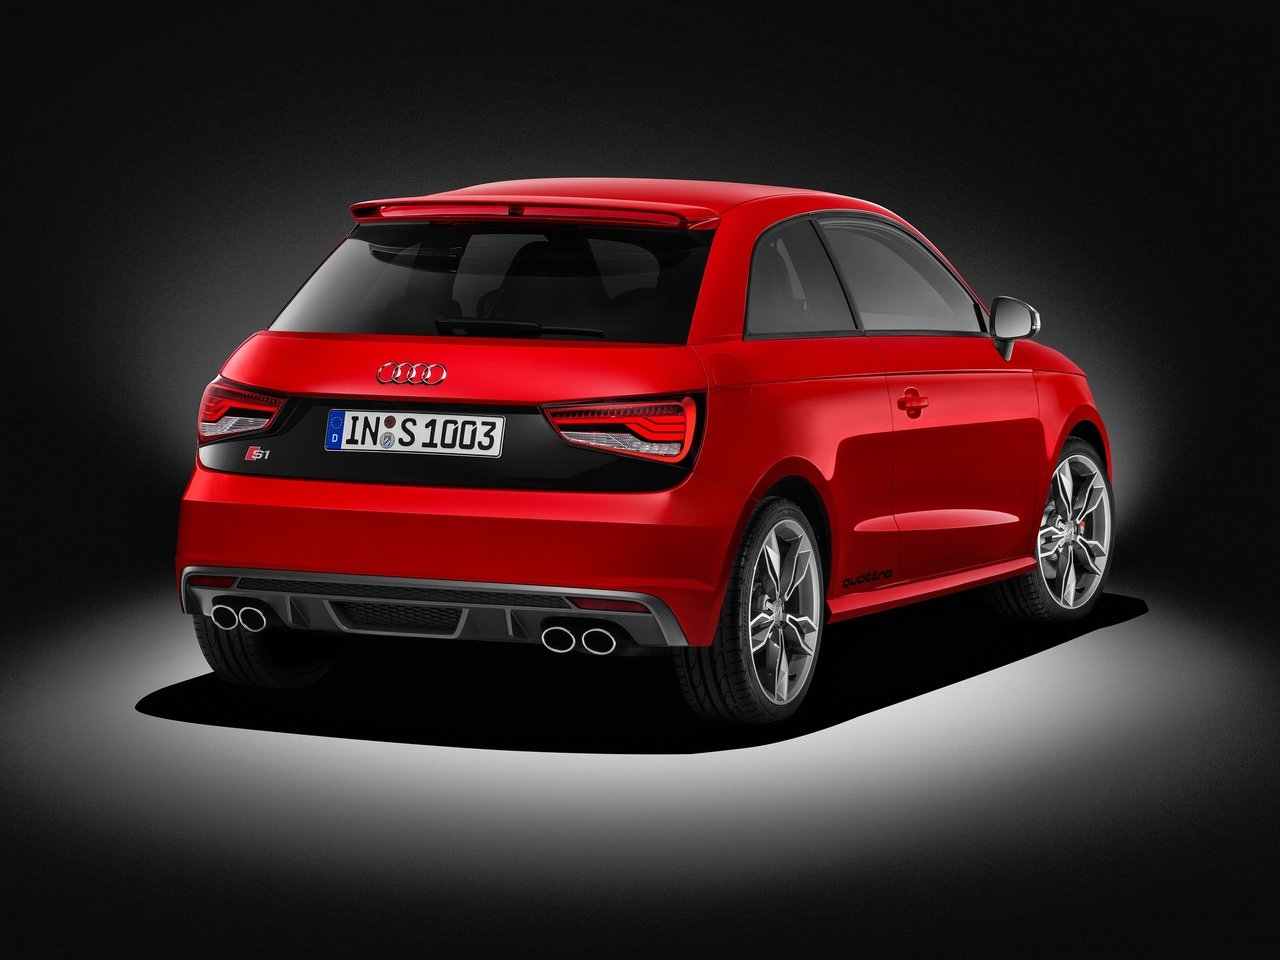 nouvelle audi s1 pour aller presque taquiner la polo r galerie vid o blog automobile. Black Bedroom Furniture Sets. Home Design Ideas